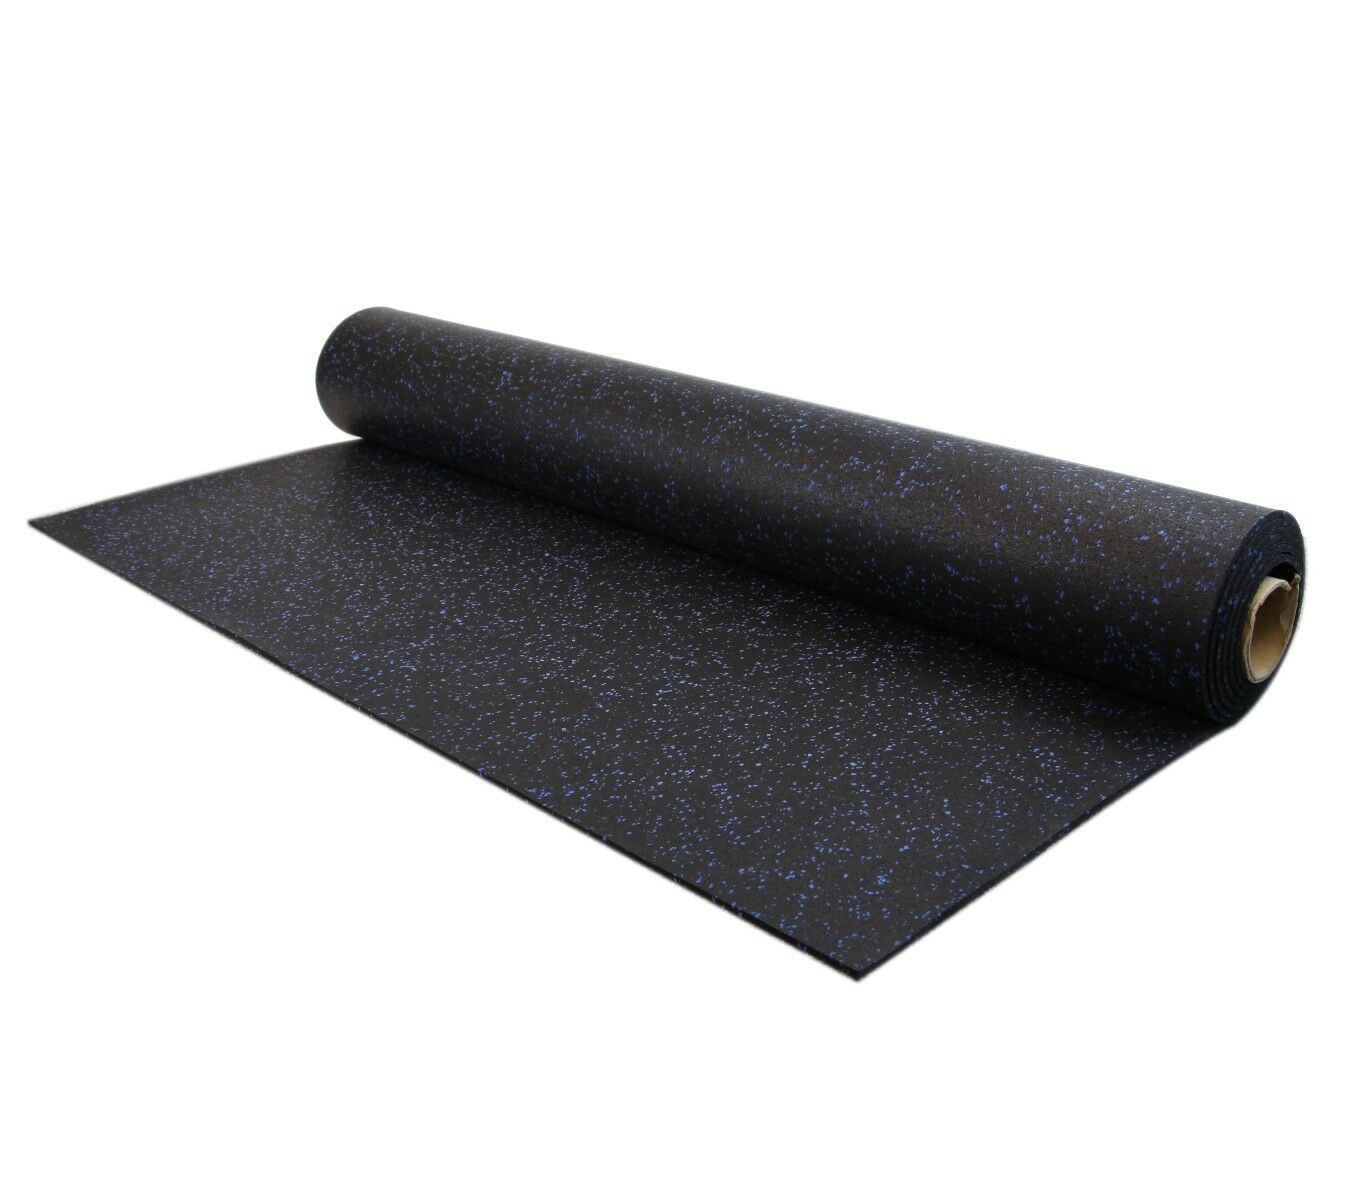 Incstores rubber mats 4 39 x10 39 portable home gym flooring for Rubber flooring